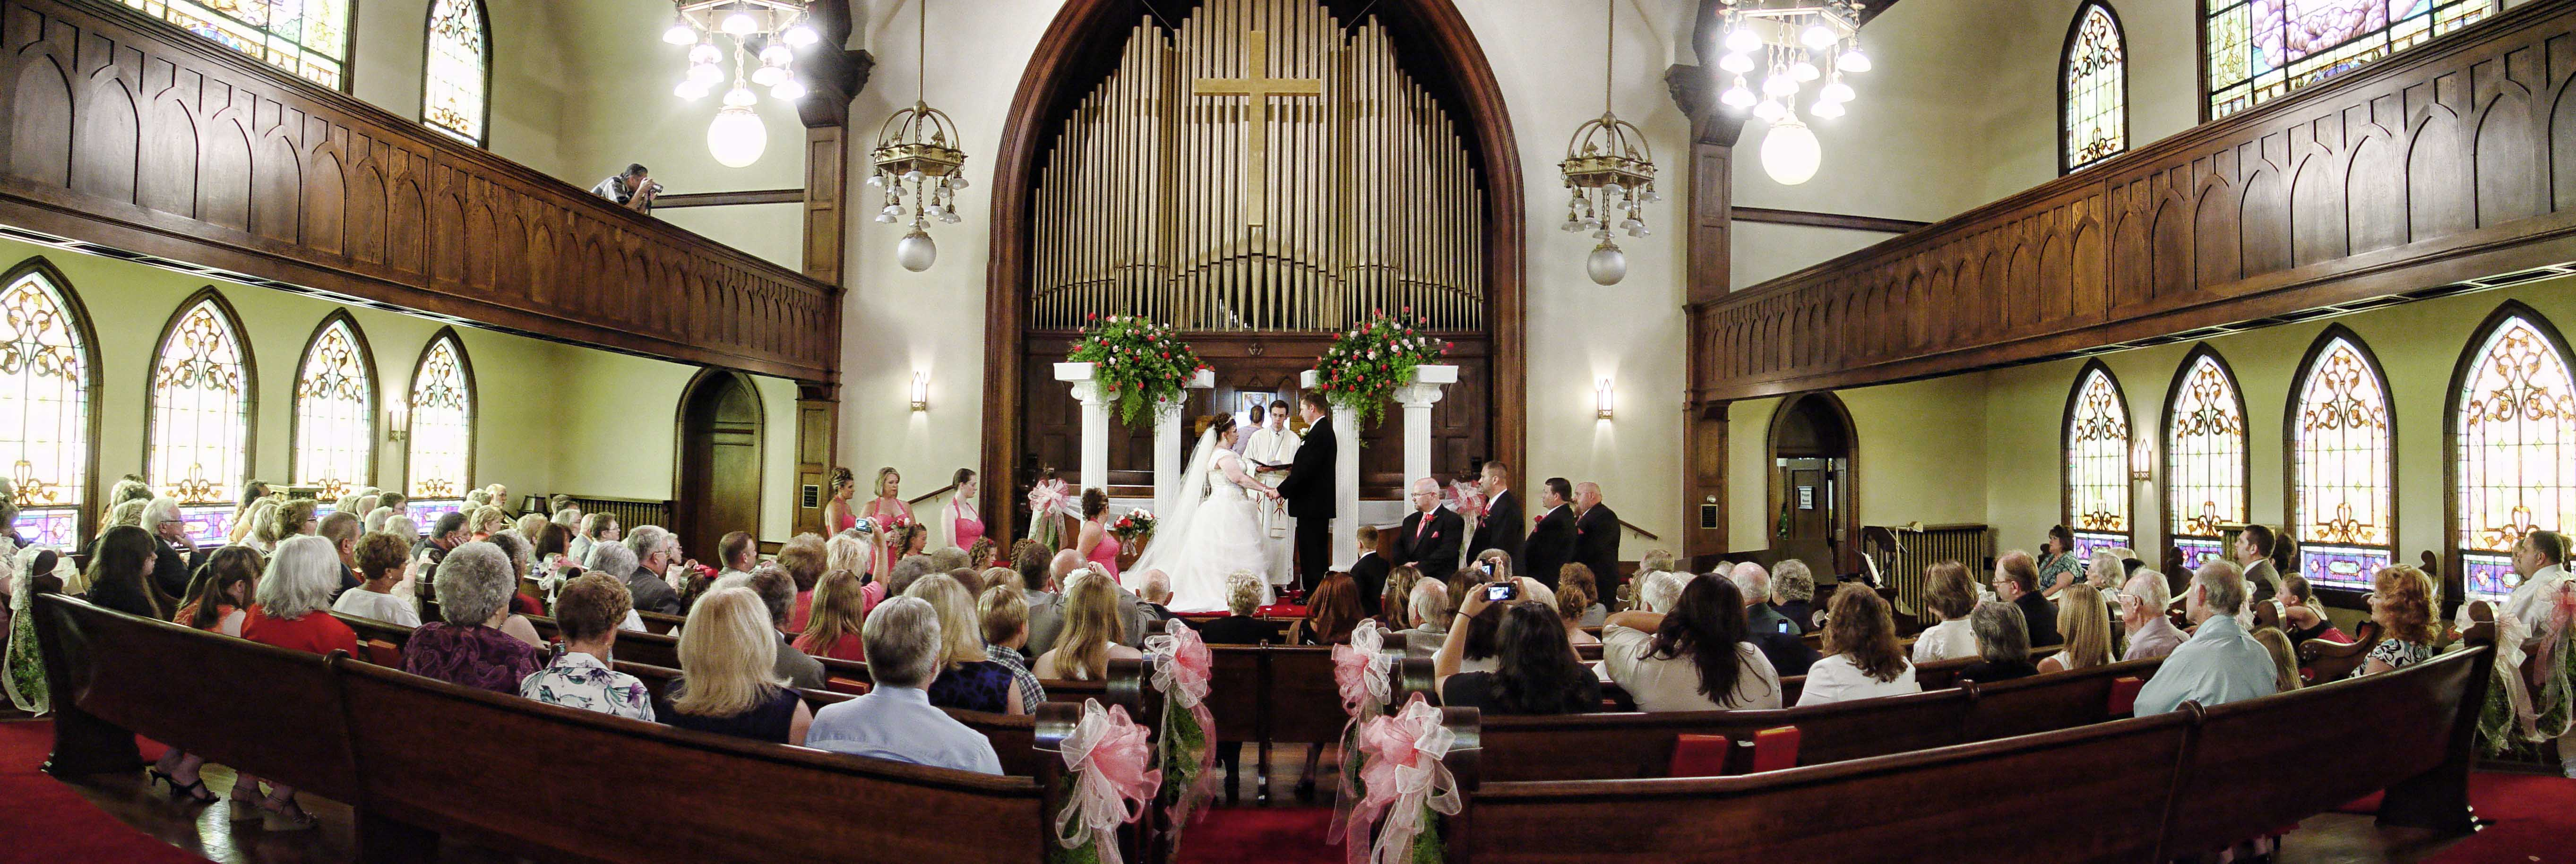 sevierville wedding photography 18